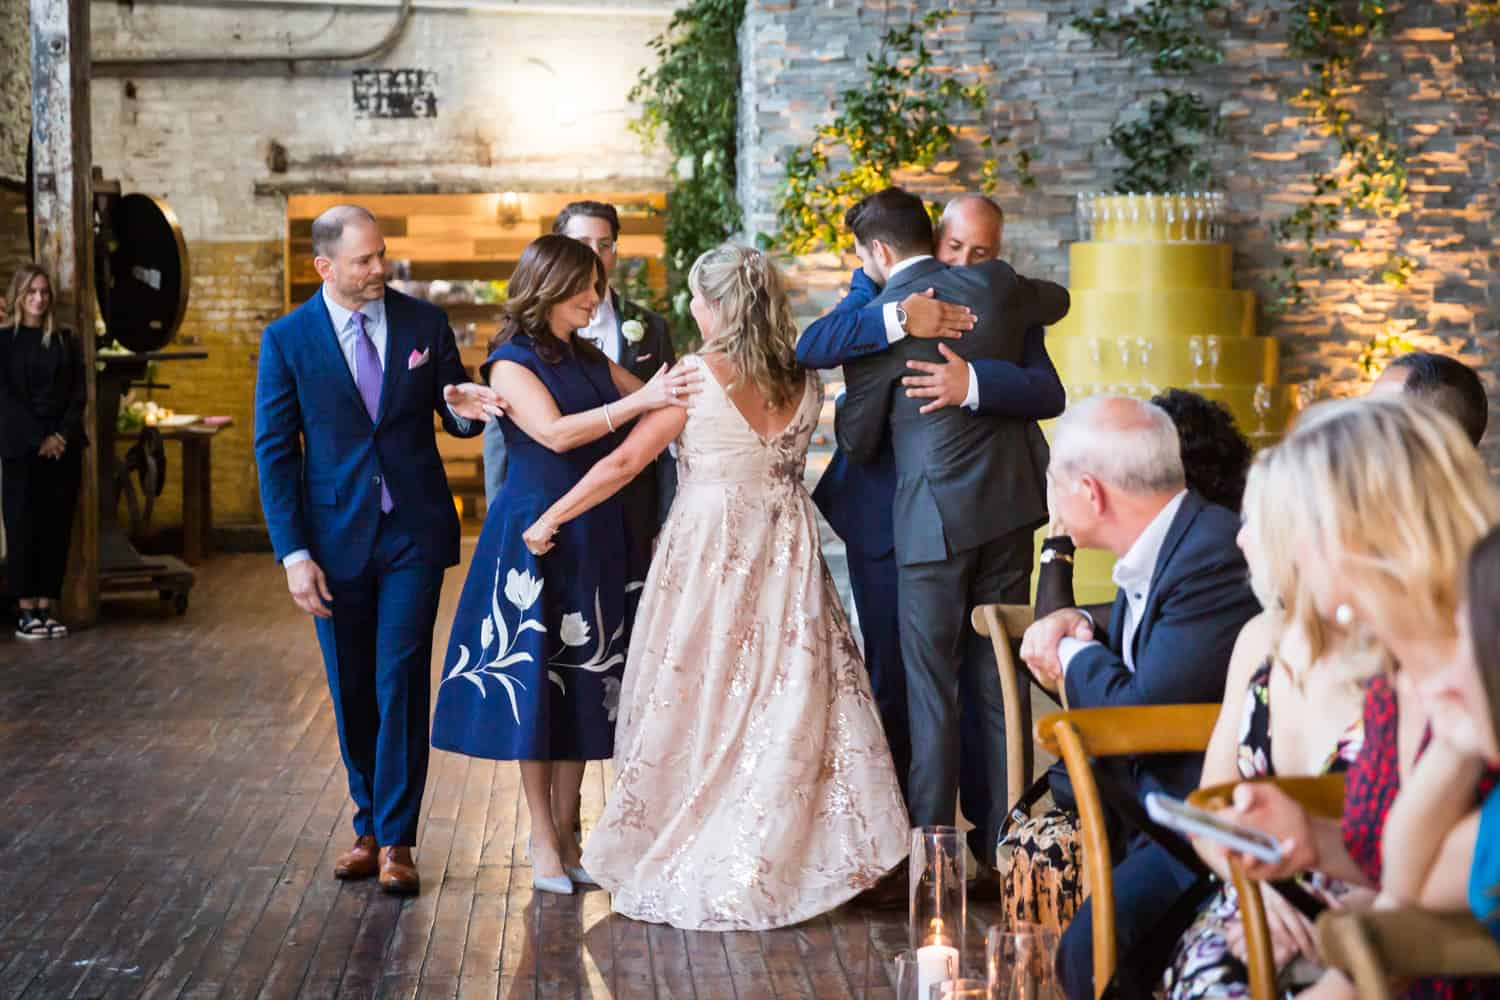 Greenpoint Loft wedding photos of two grooms and respective parents hugging each other in aisle